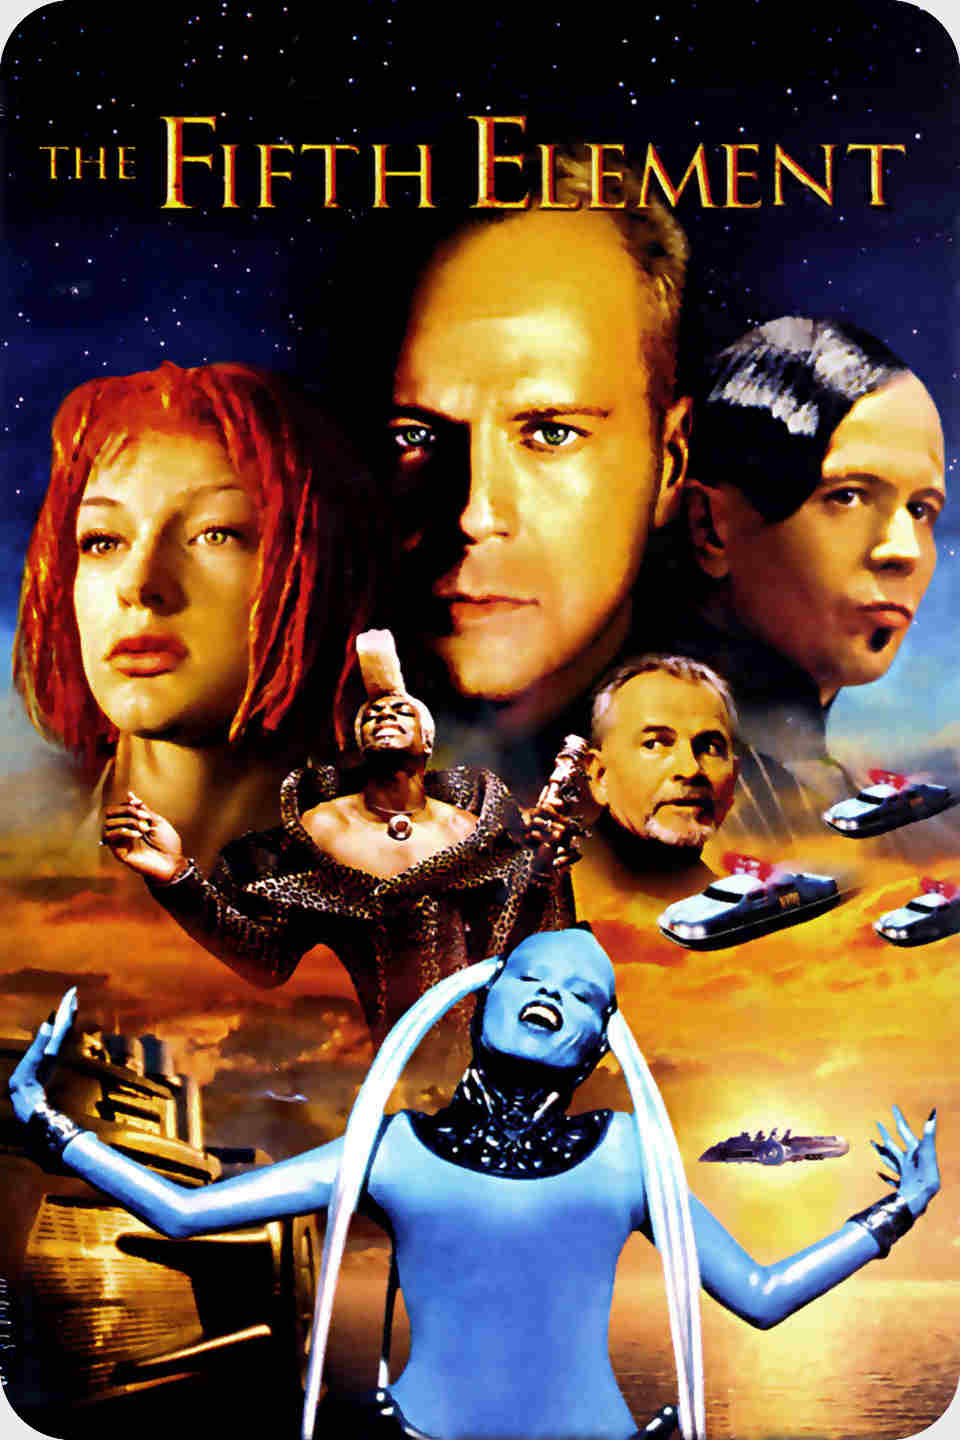 فیلم The Fifth Element 1997